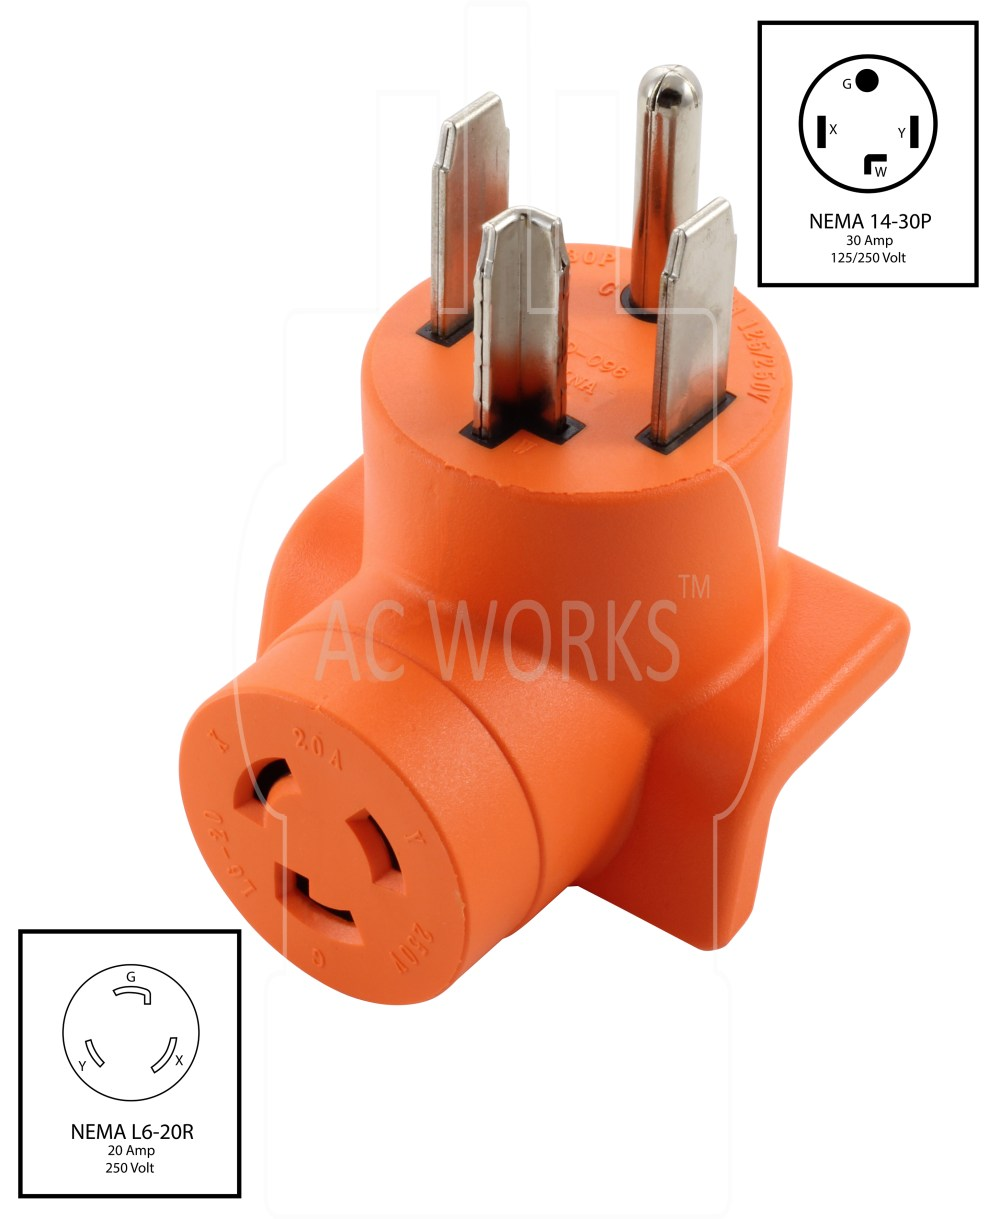 medium resolution of ac works ad1430l620 dryer outlet adapter nema 14 30p 30amp dryer plug to l6 20r 20amp 250volt locking female connector walmart com